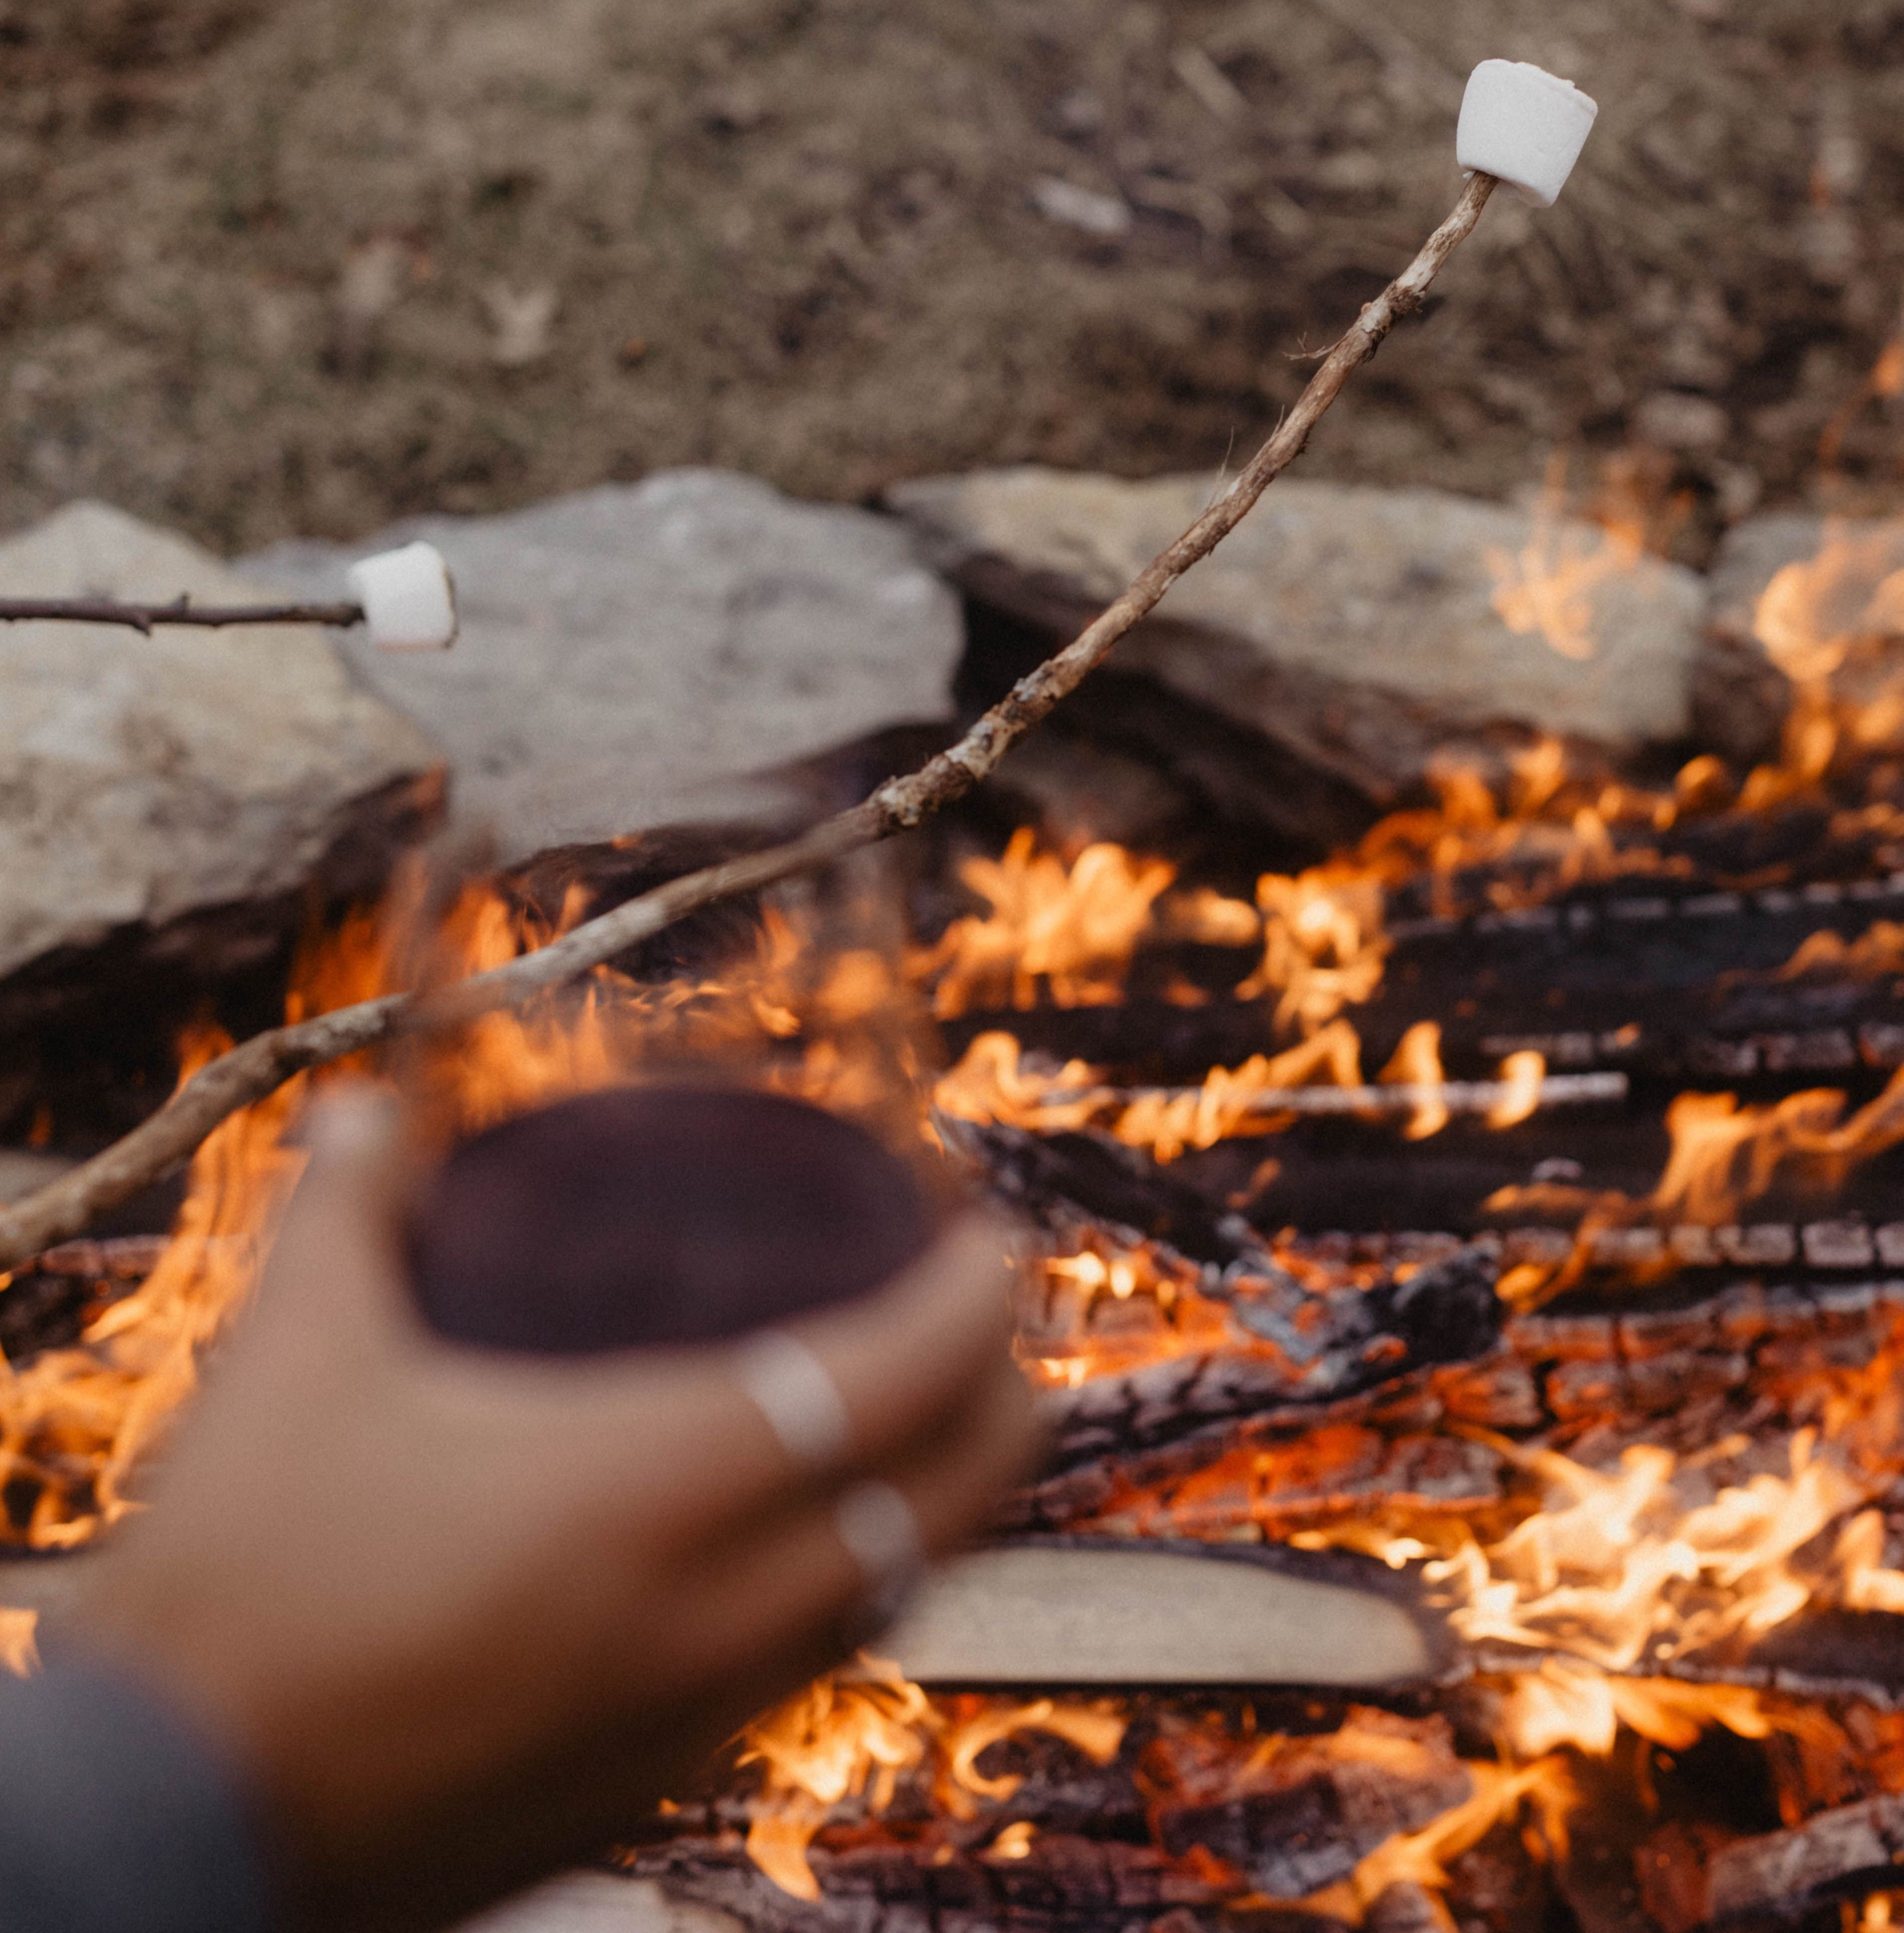 Marshmallows and wine by the campfire